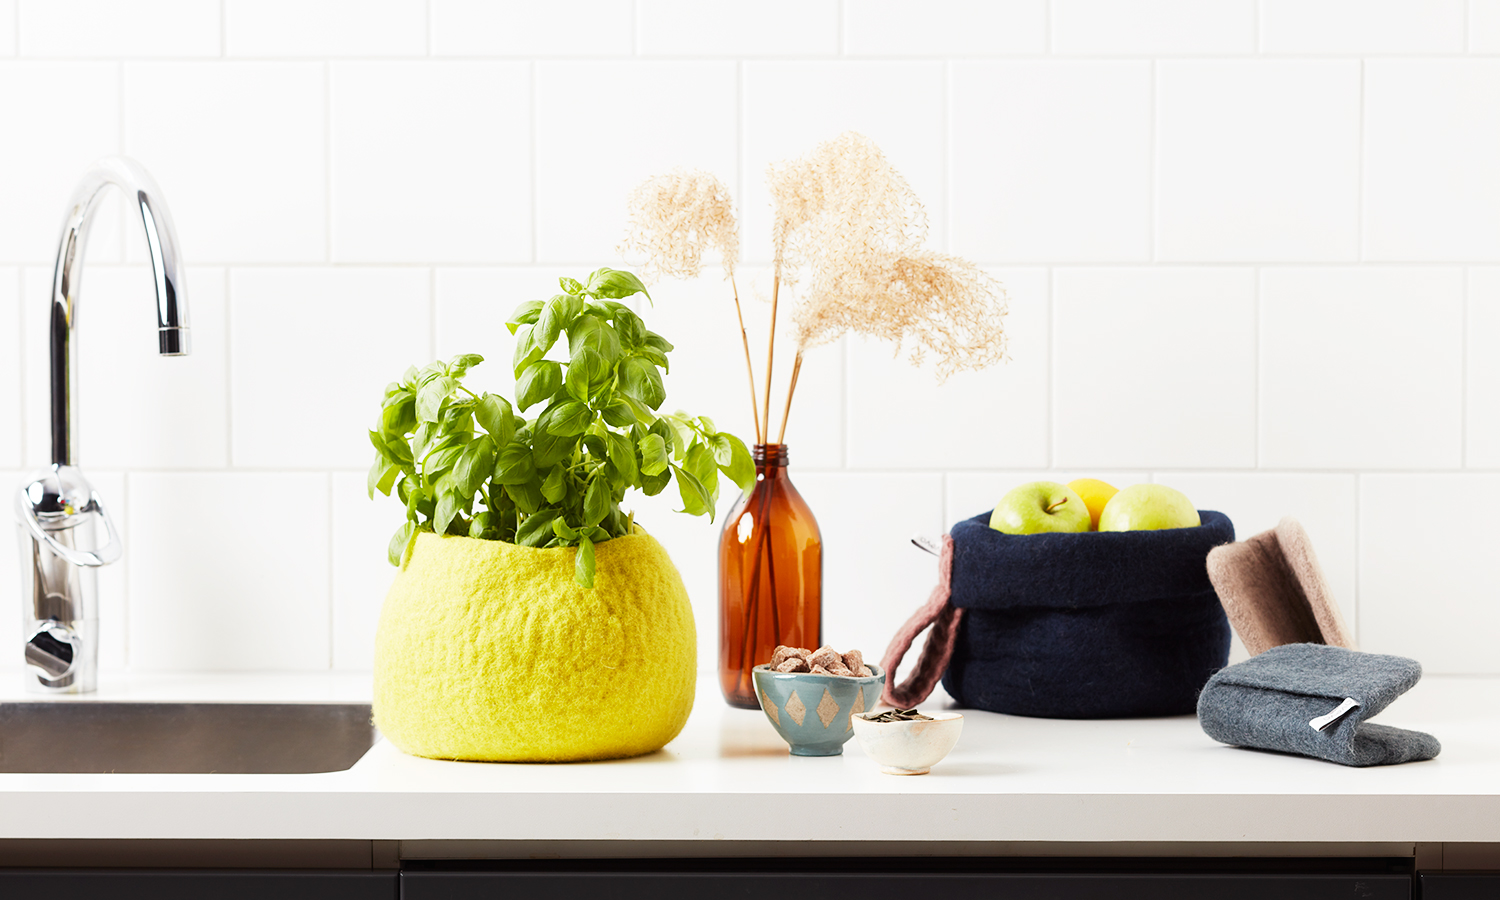 Grey and beige pot holders in kitchen with yellow flower pot